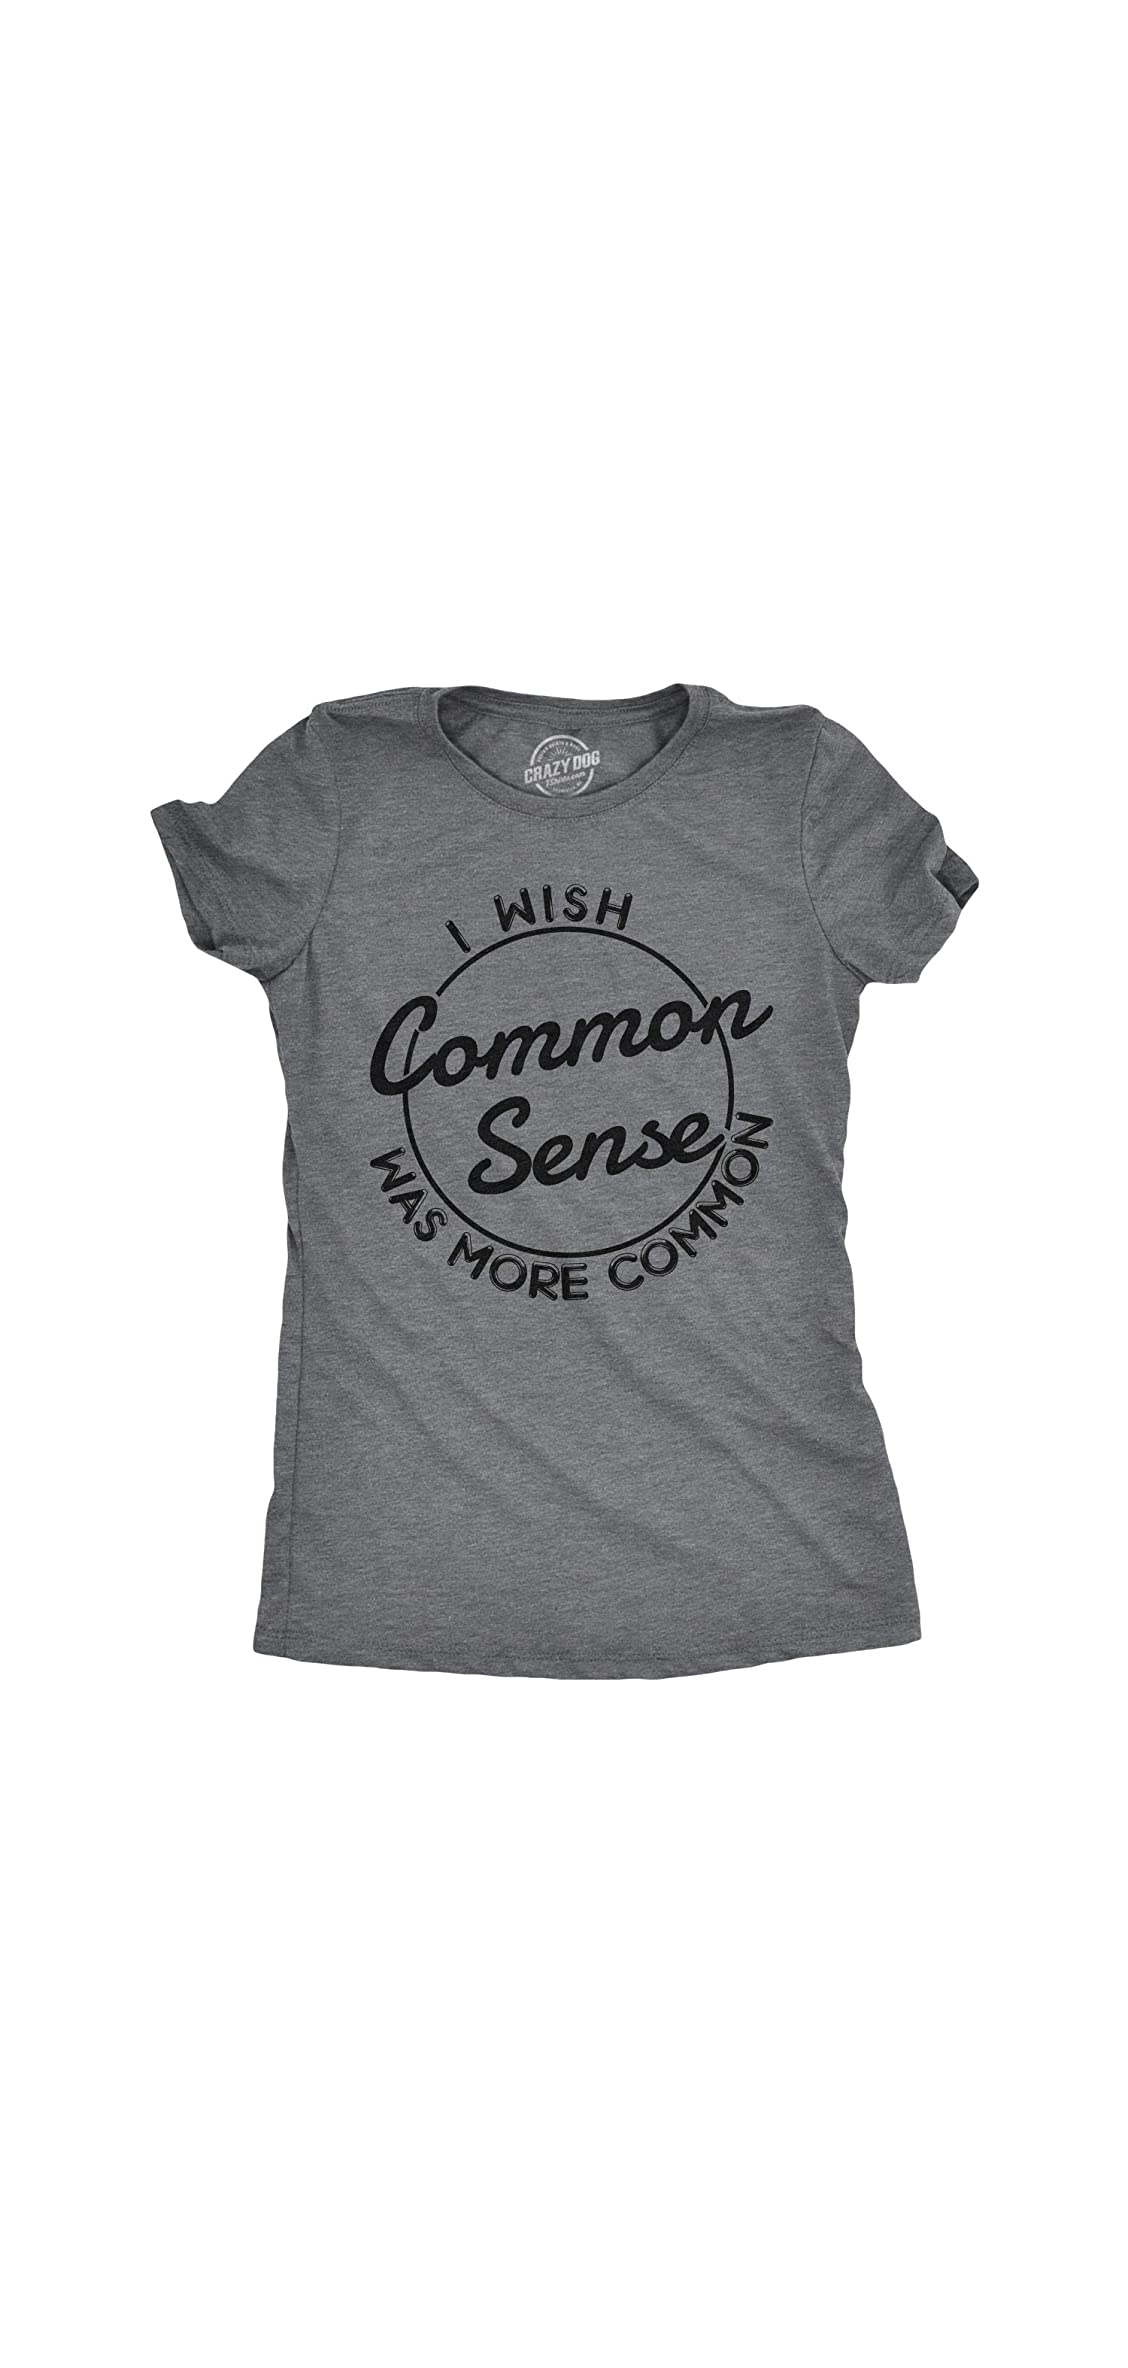 Womens I Wish Common Sense Was More Common Tshirt Funny Tee